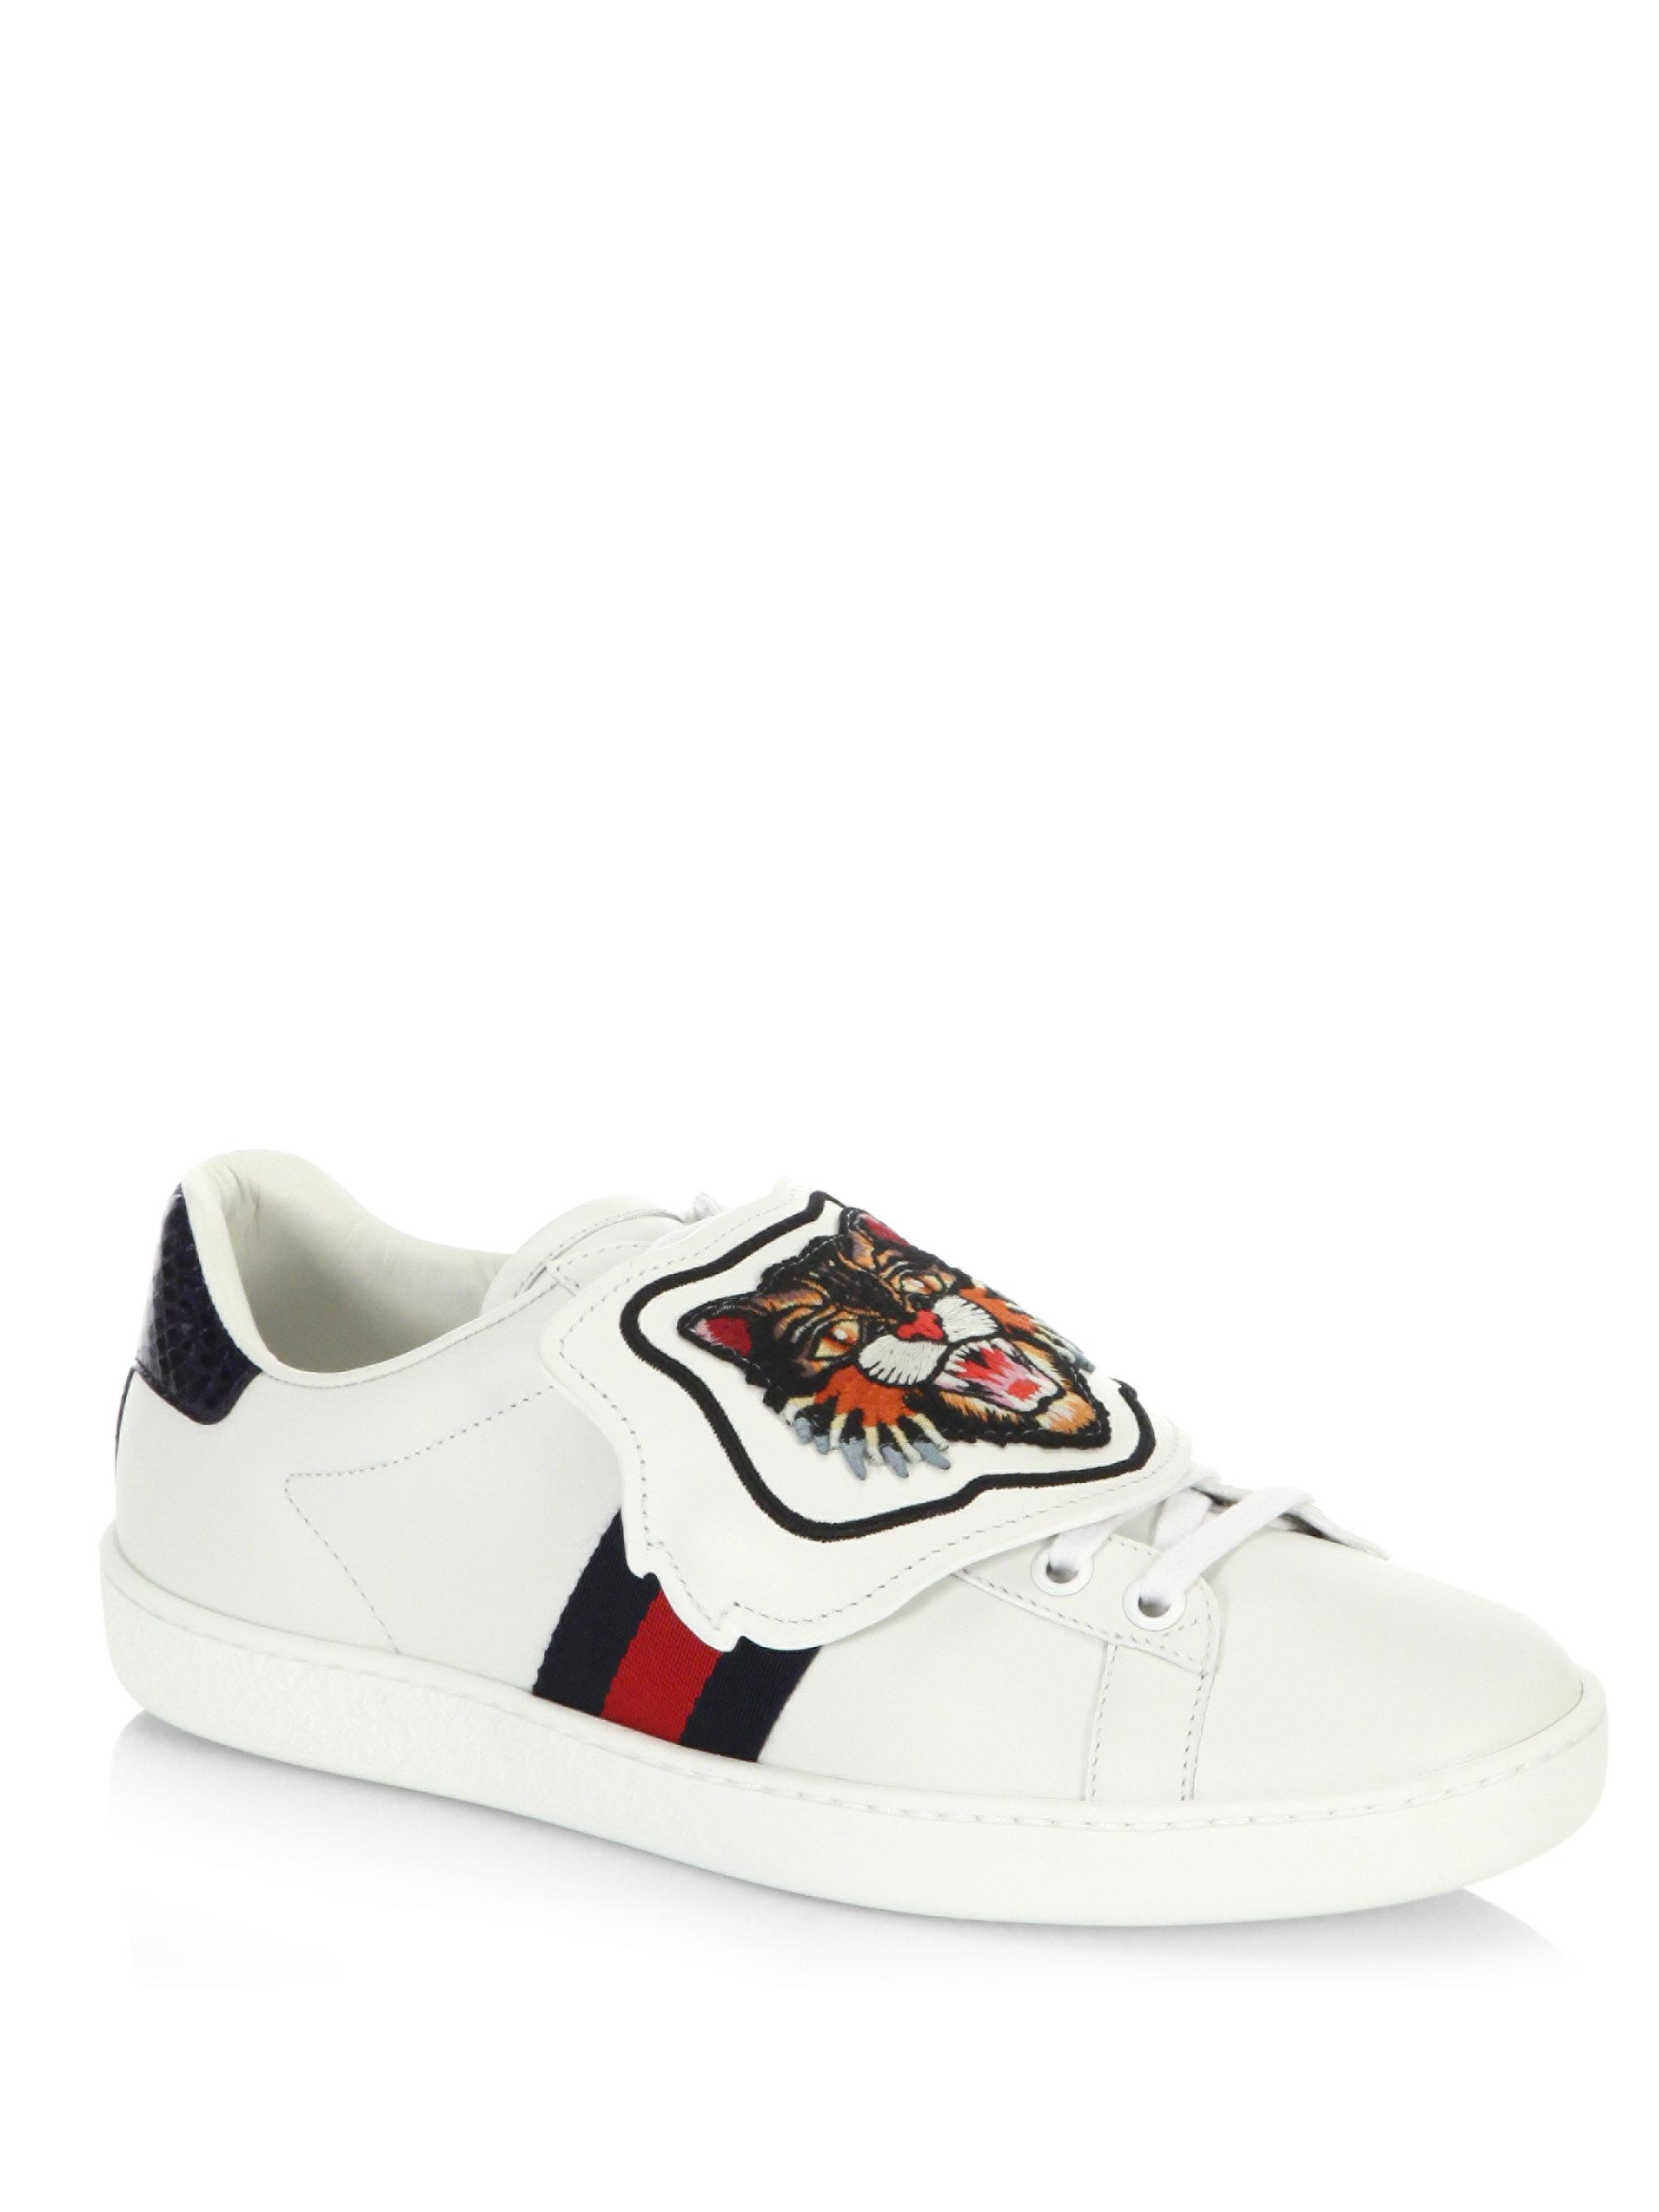 b5e1df6357d Gucci New Ace Lion Patch Sneakers in White - Lyst